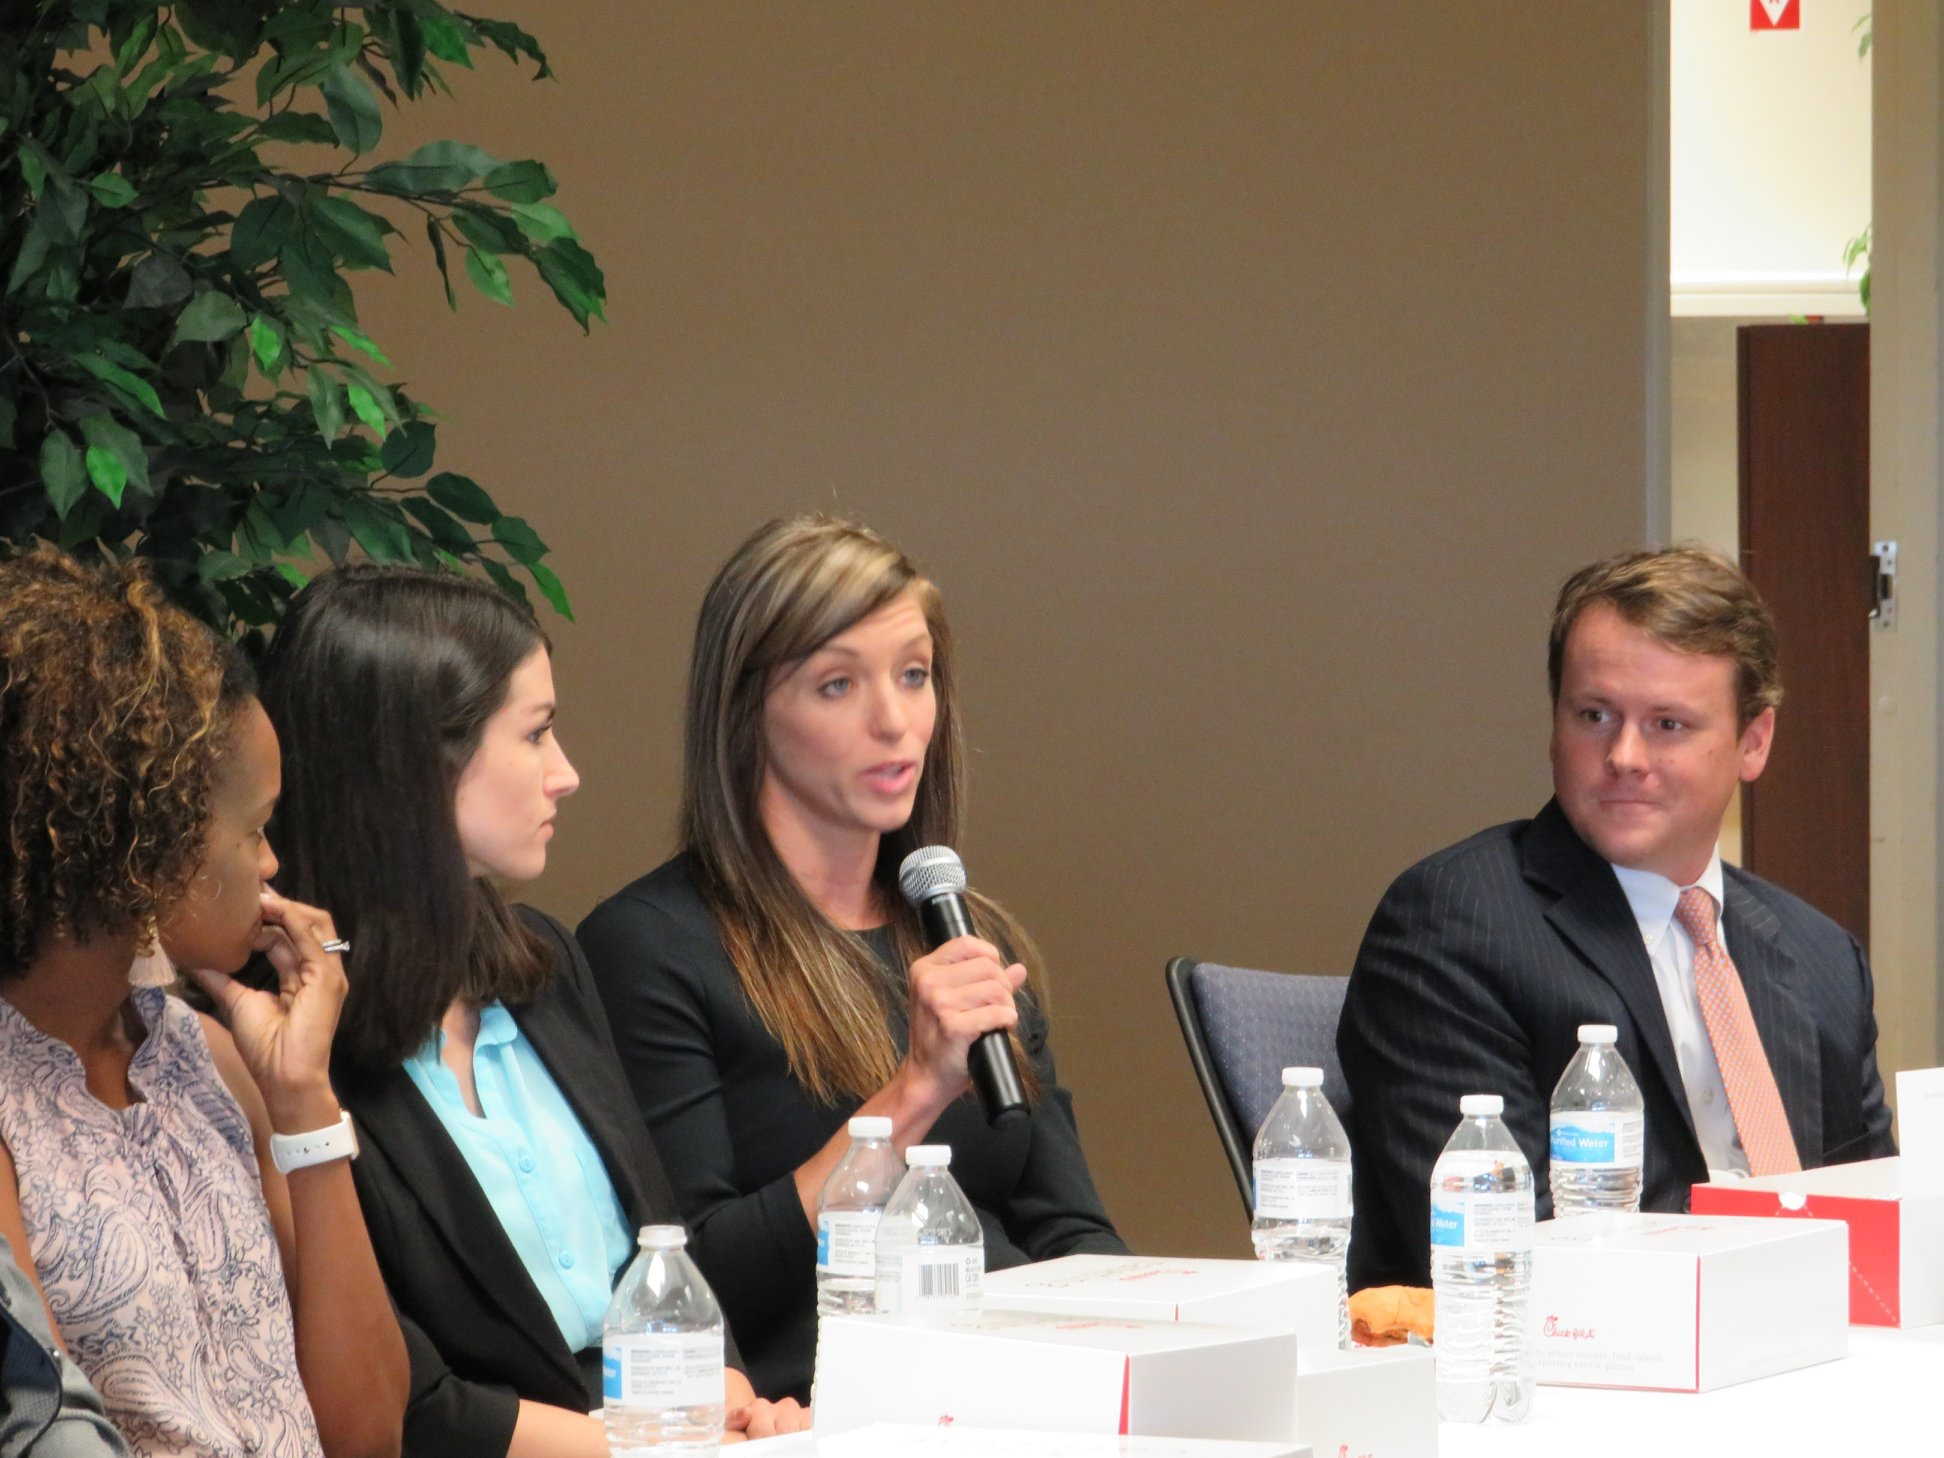 Managing Partners Giveback Through Local Law School Panel